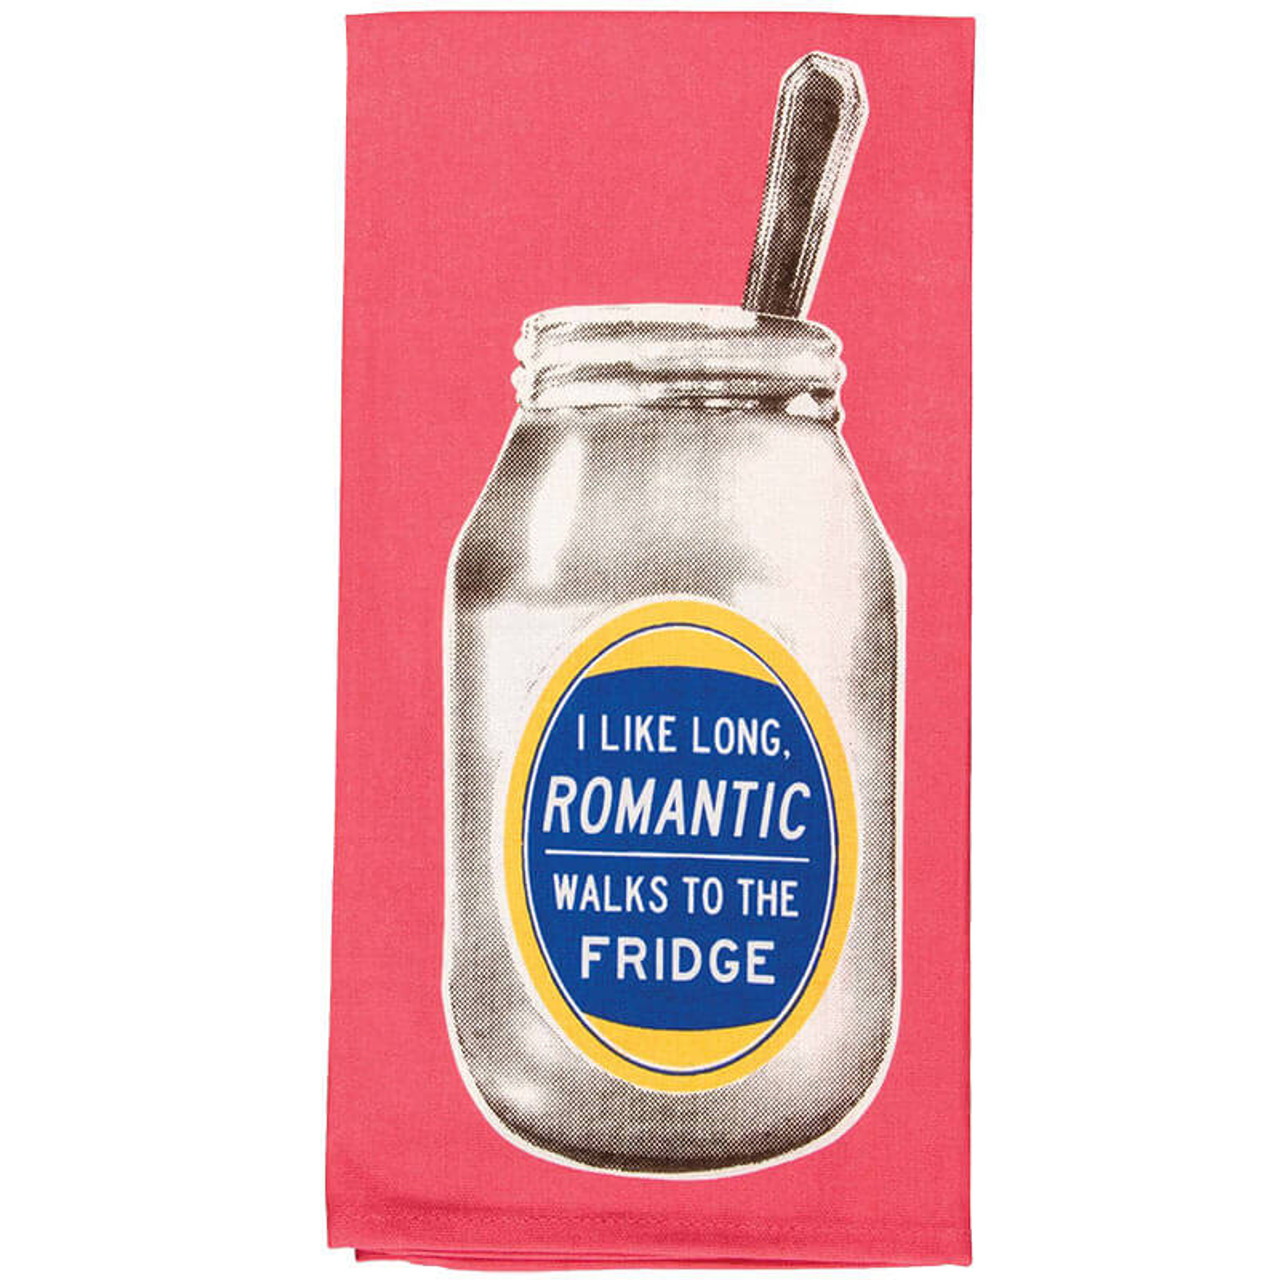 I Like Long Romantic Walks To The Fridge Dish Towel